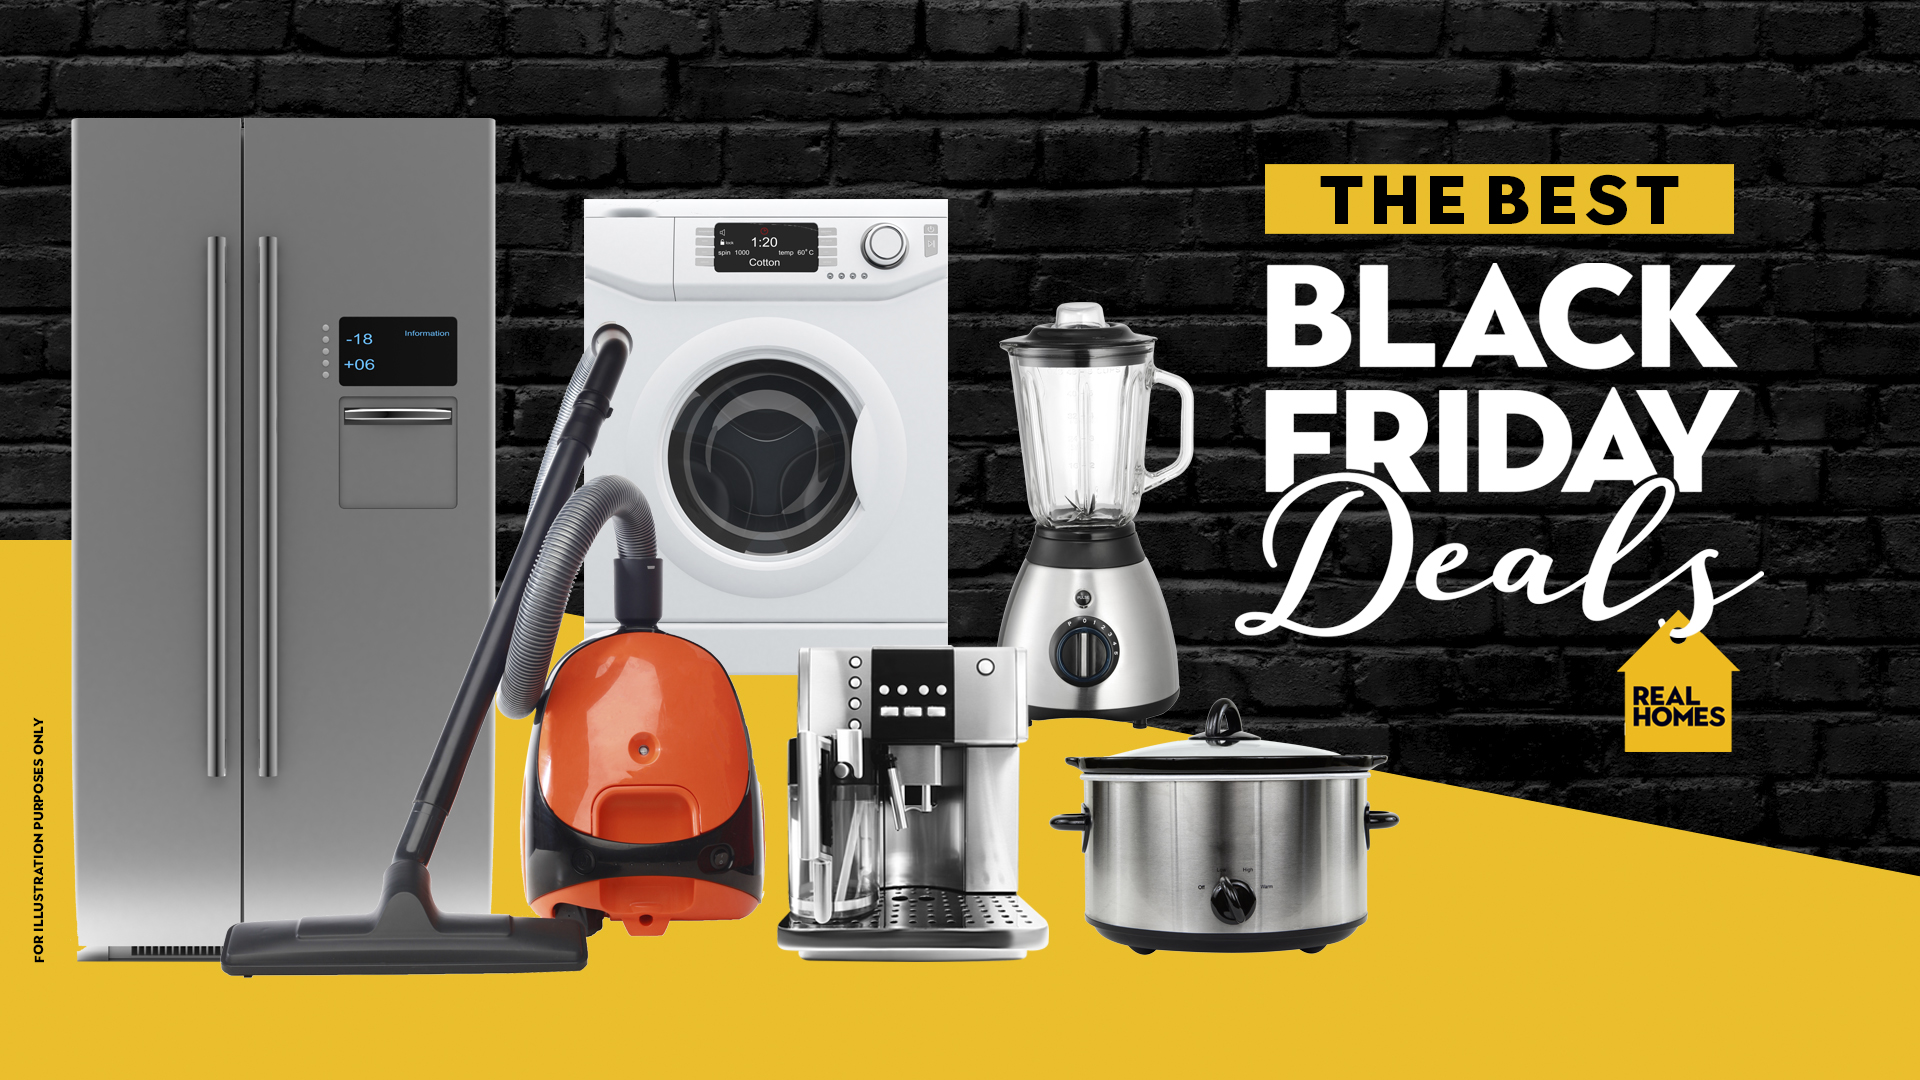 Cyber Monday Appliance Deals Save On Vacuum Cleaners Tvs And More Real Homes